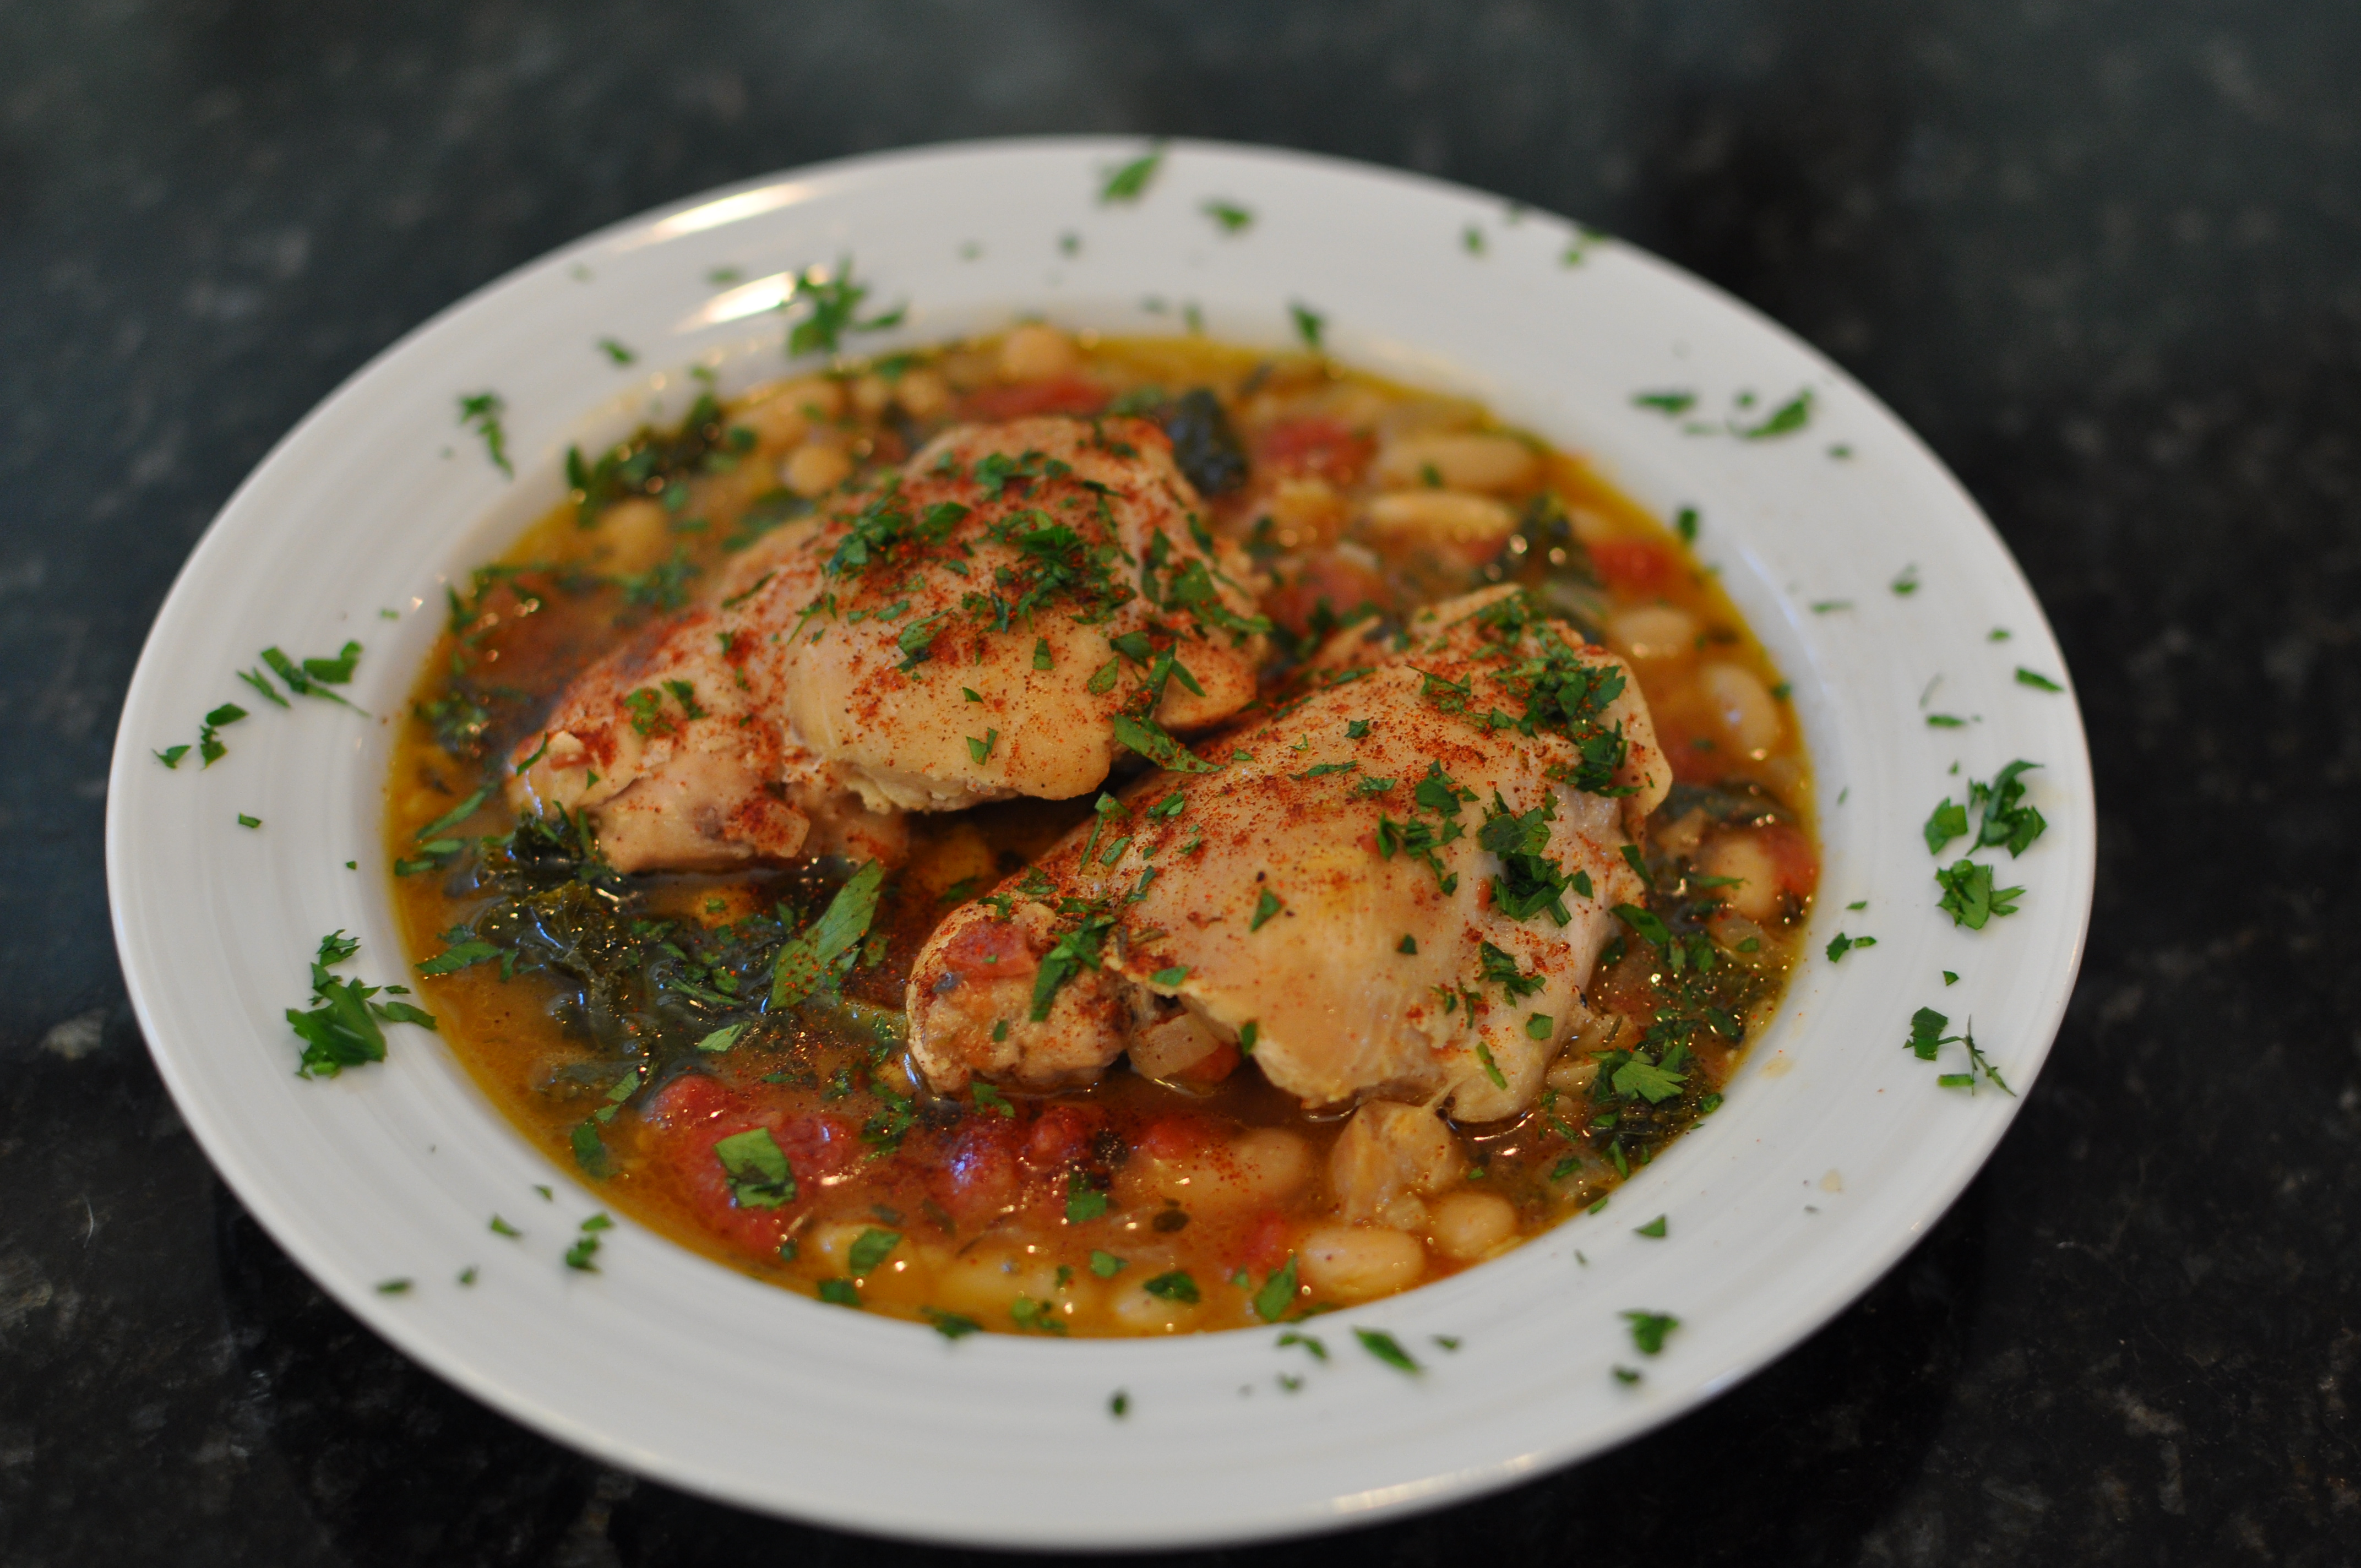 Chicken Soups And Stews is a Soup Stew or Chicken